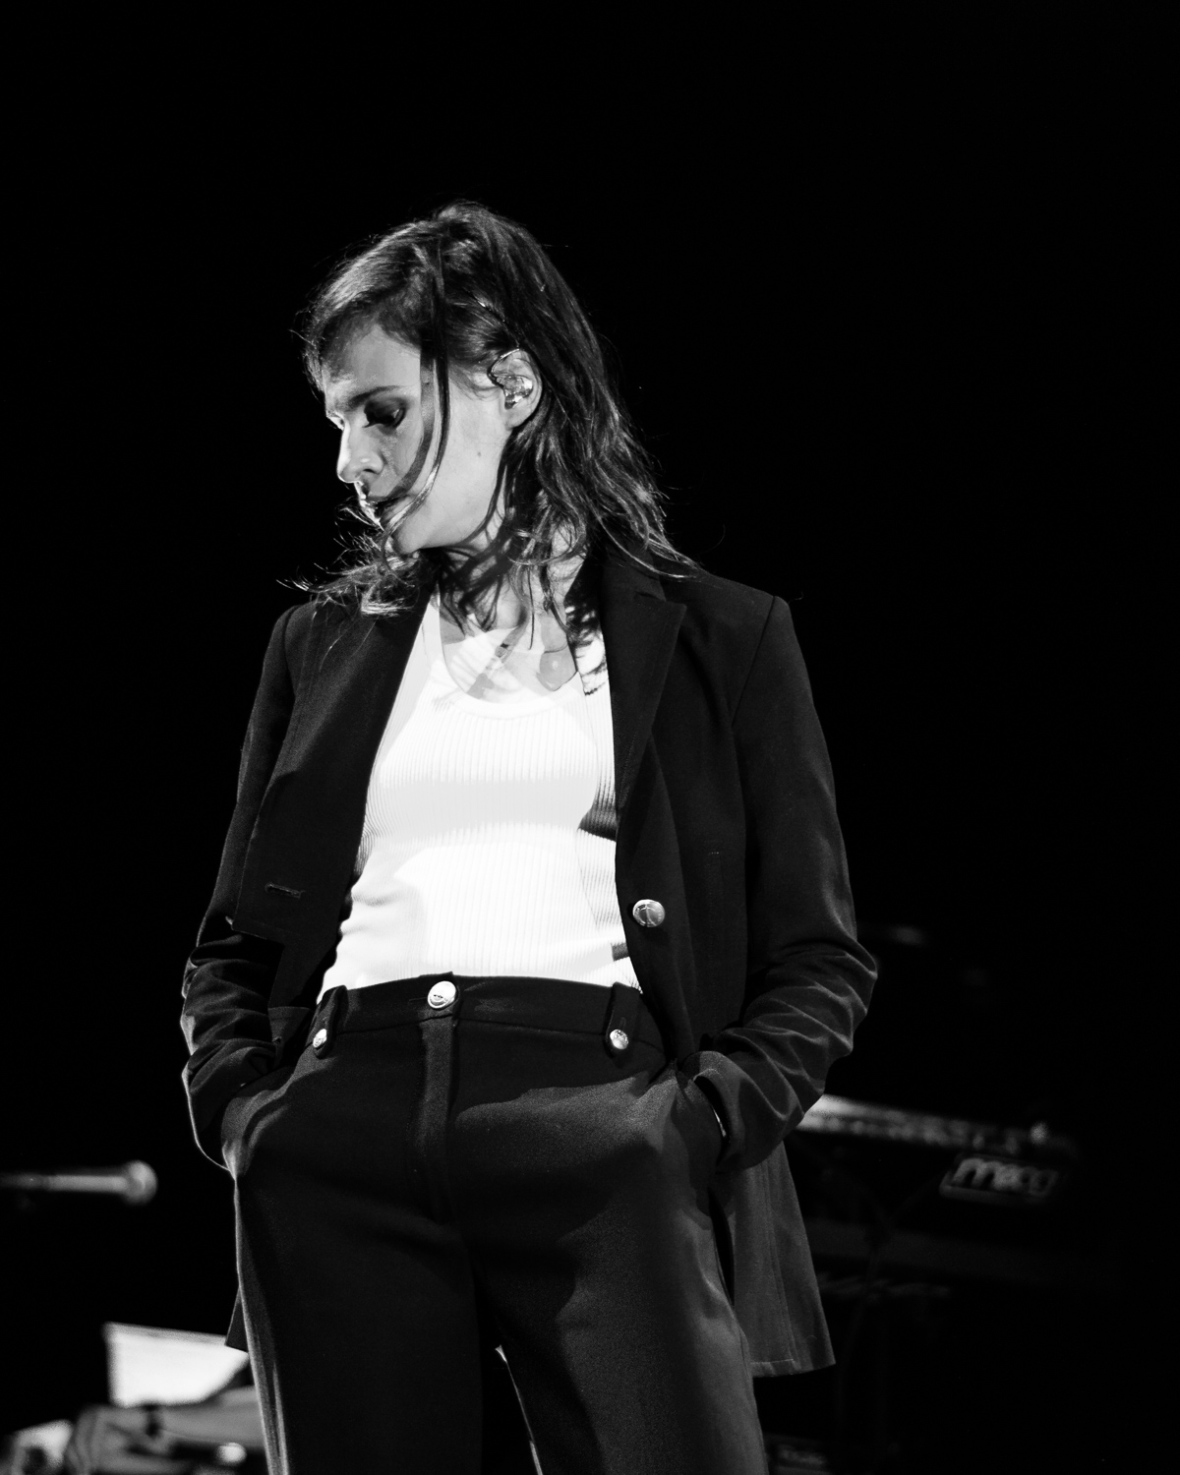 Christine & The Queens perform at the Fox Theater, Oakland